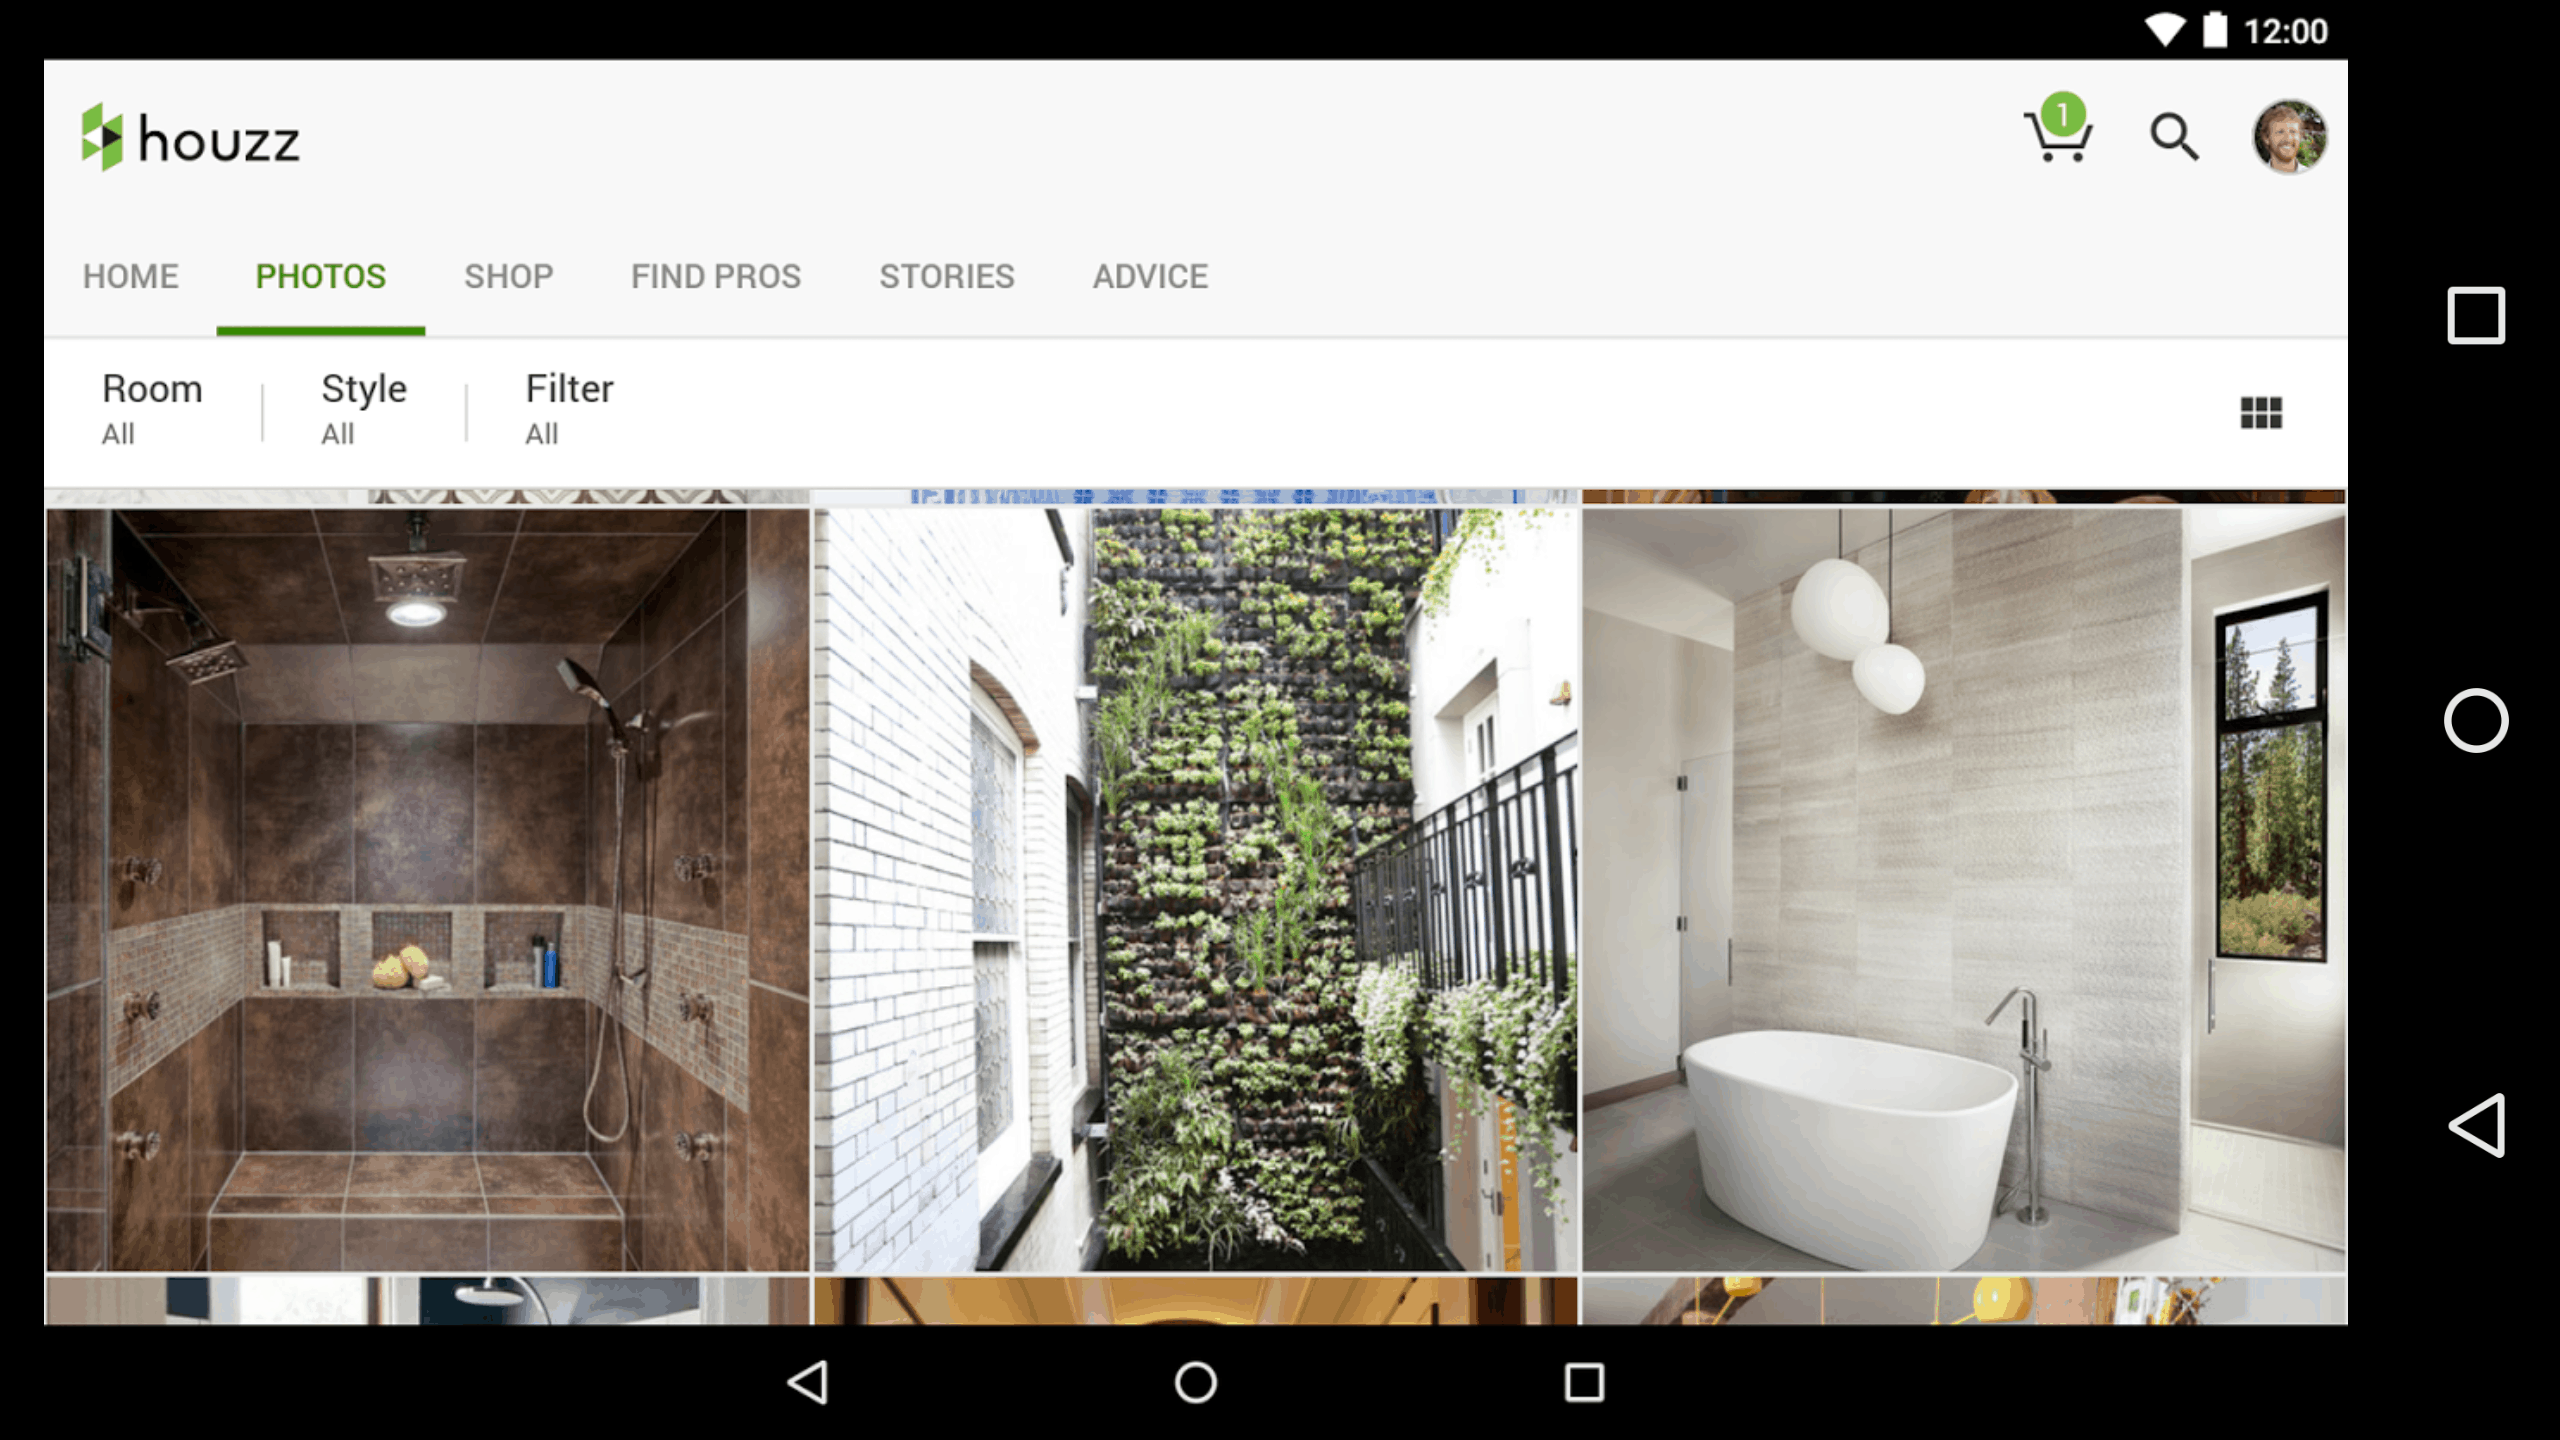 Houzz Interior Decorating App Gets Sketch Feature | Android News